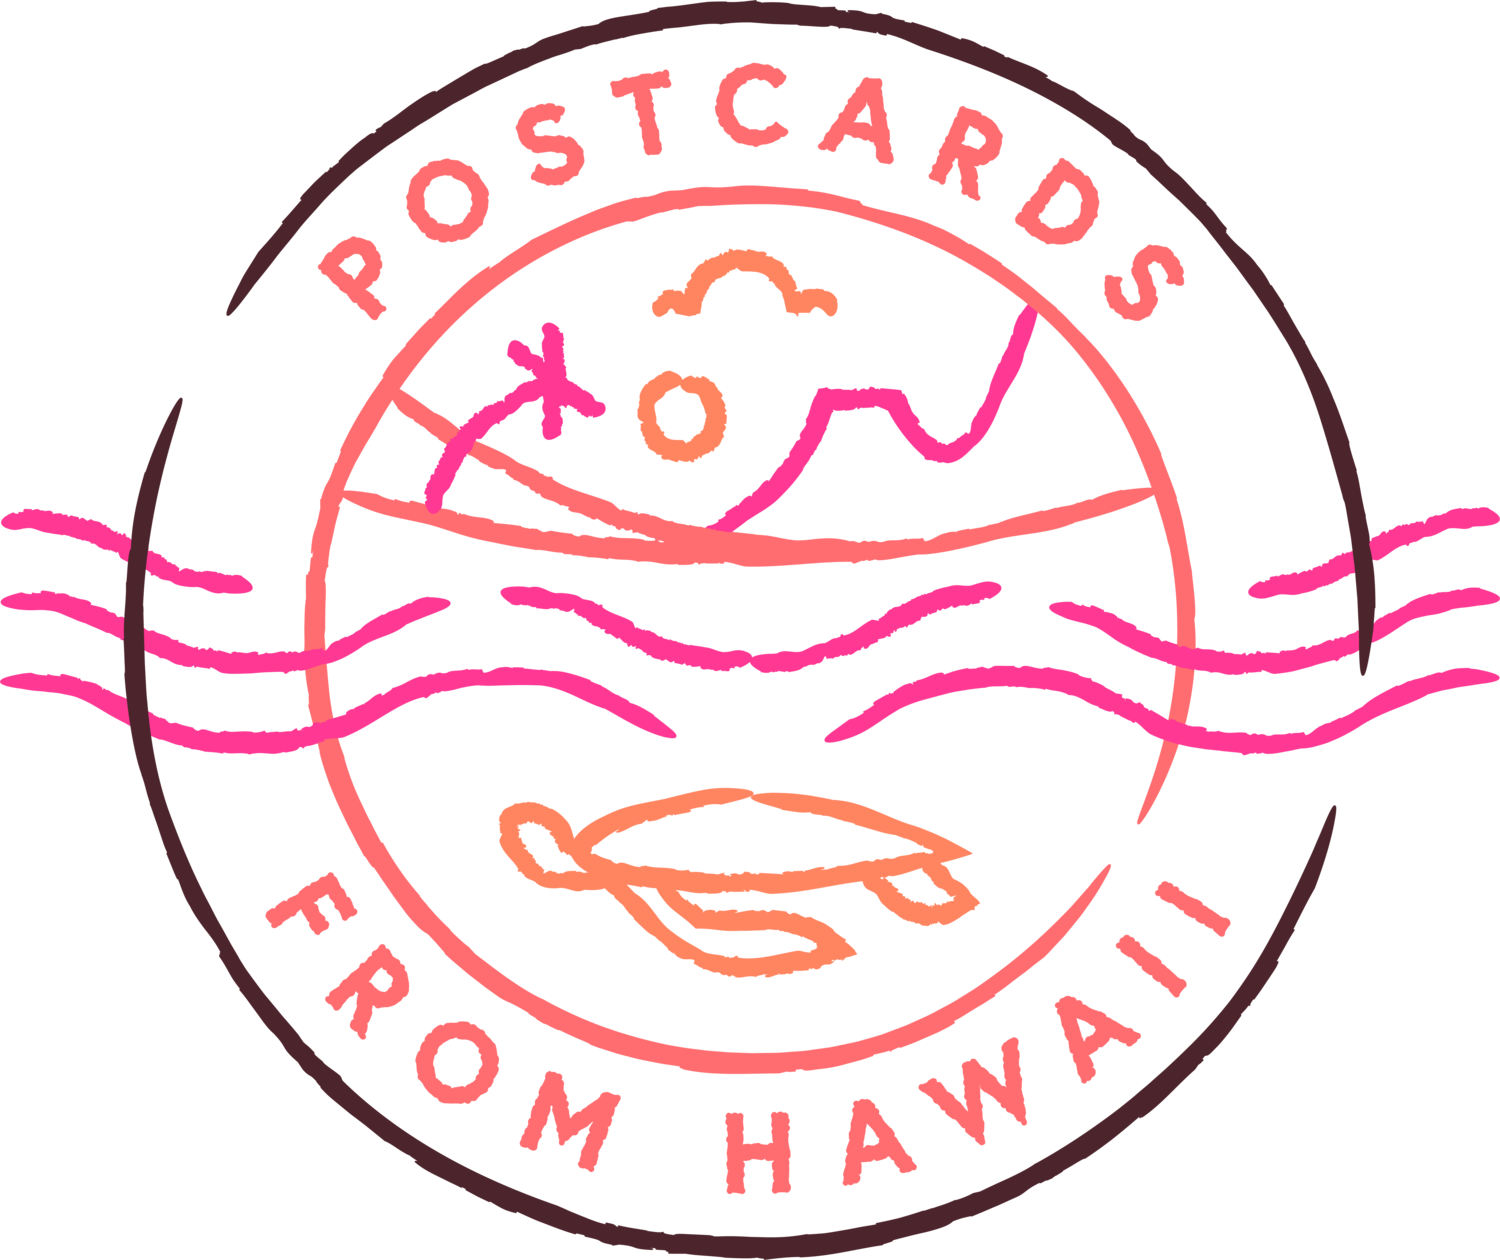 Postcards from Hawaii